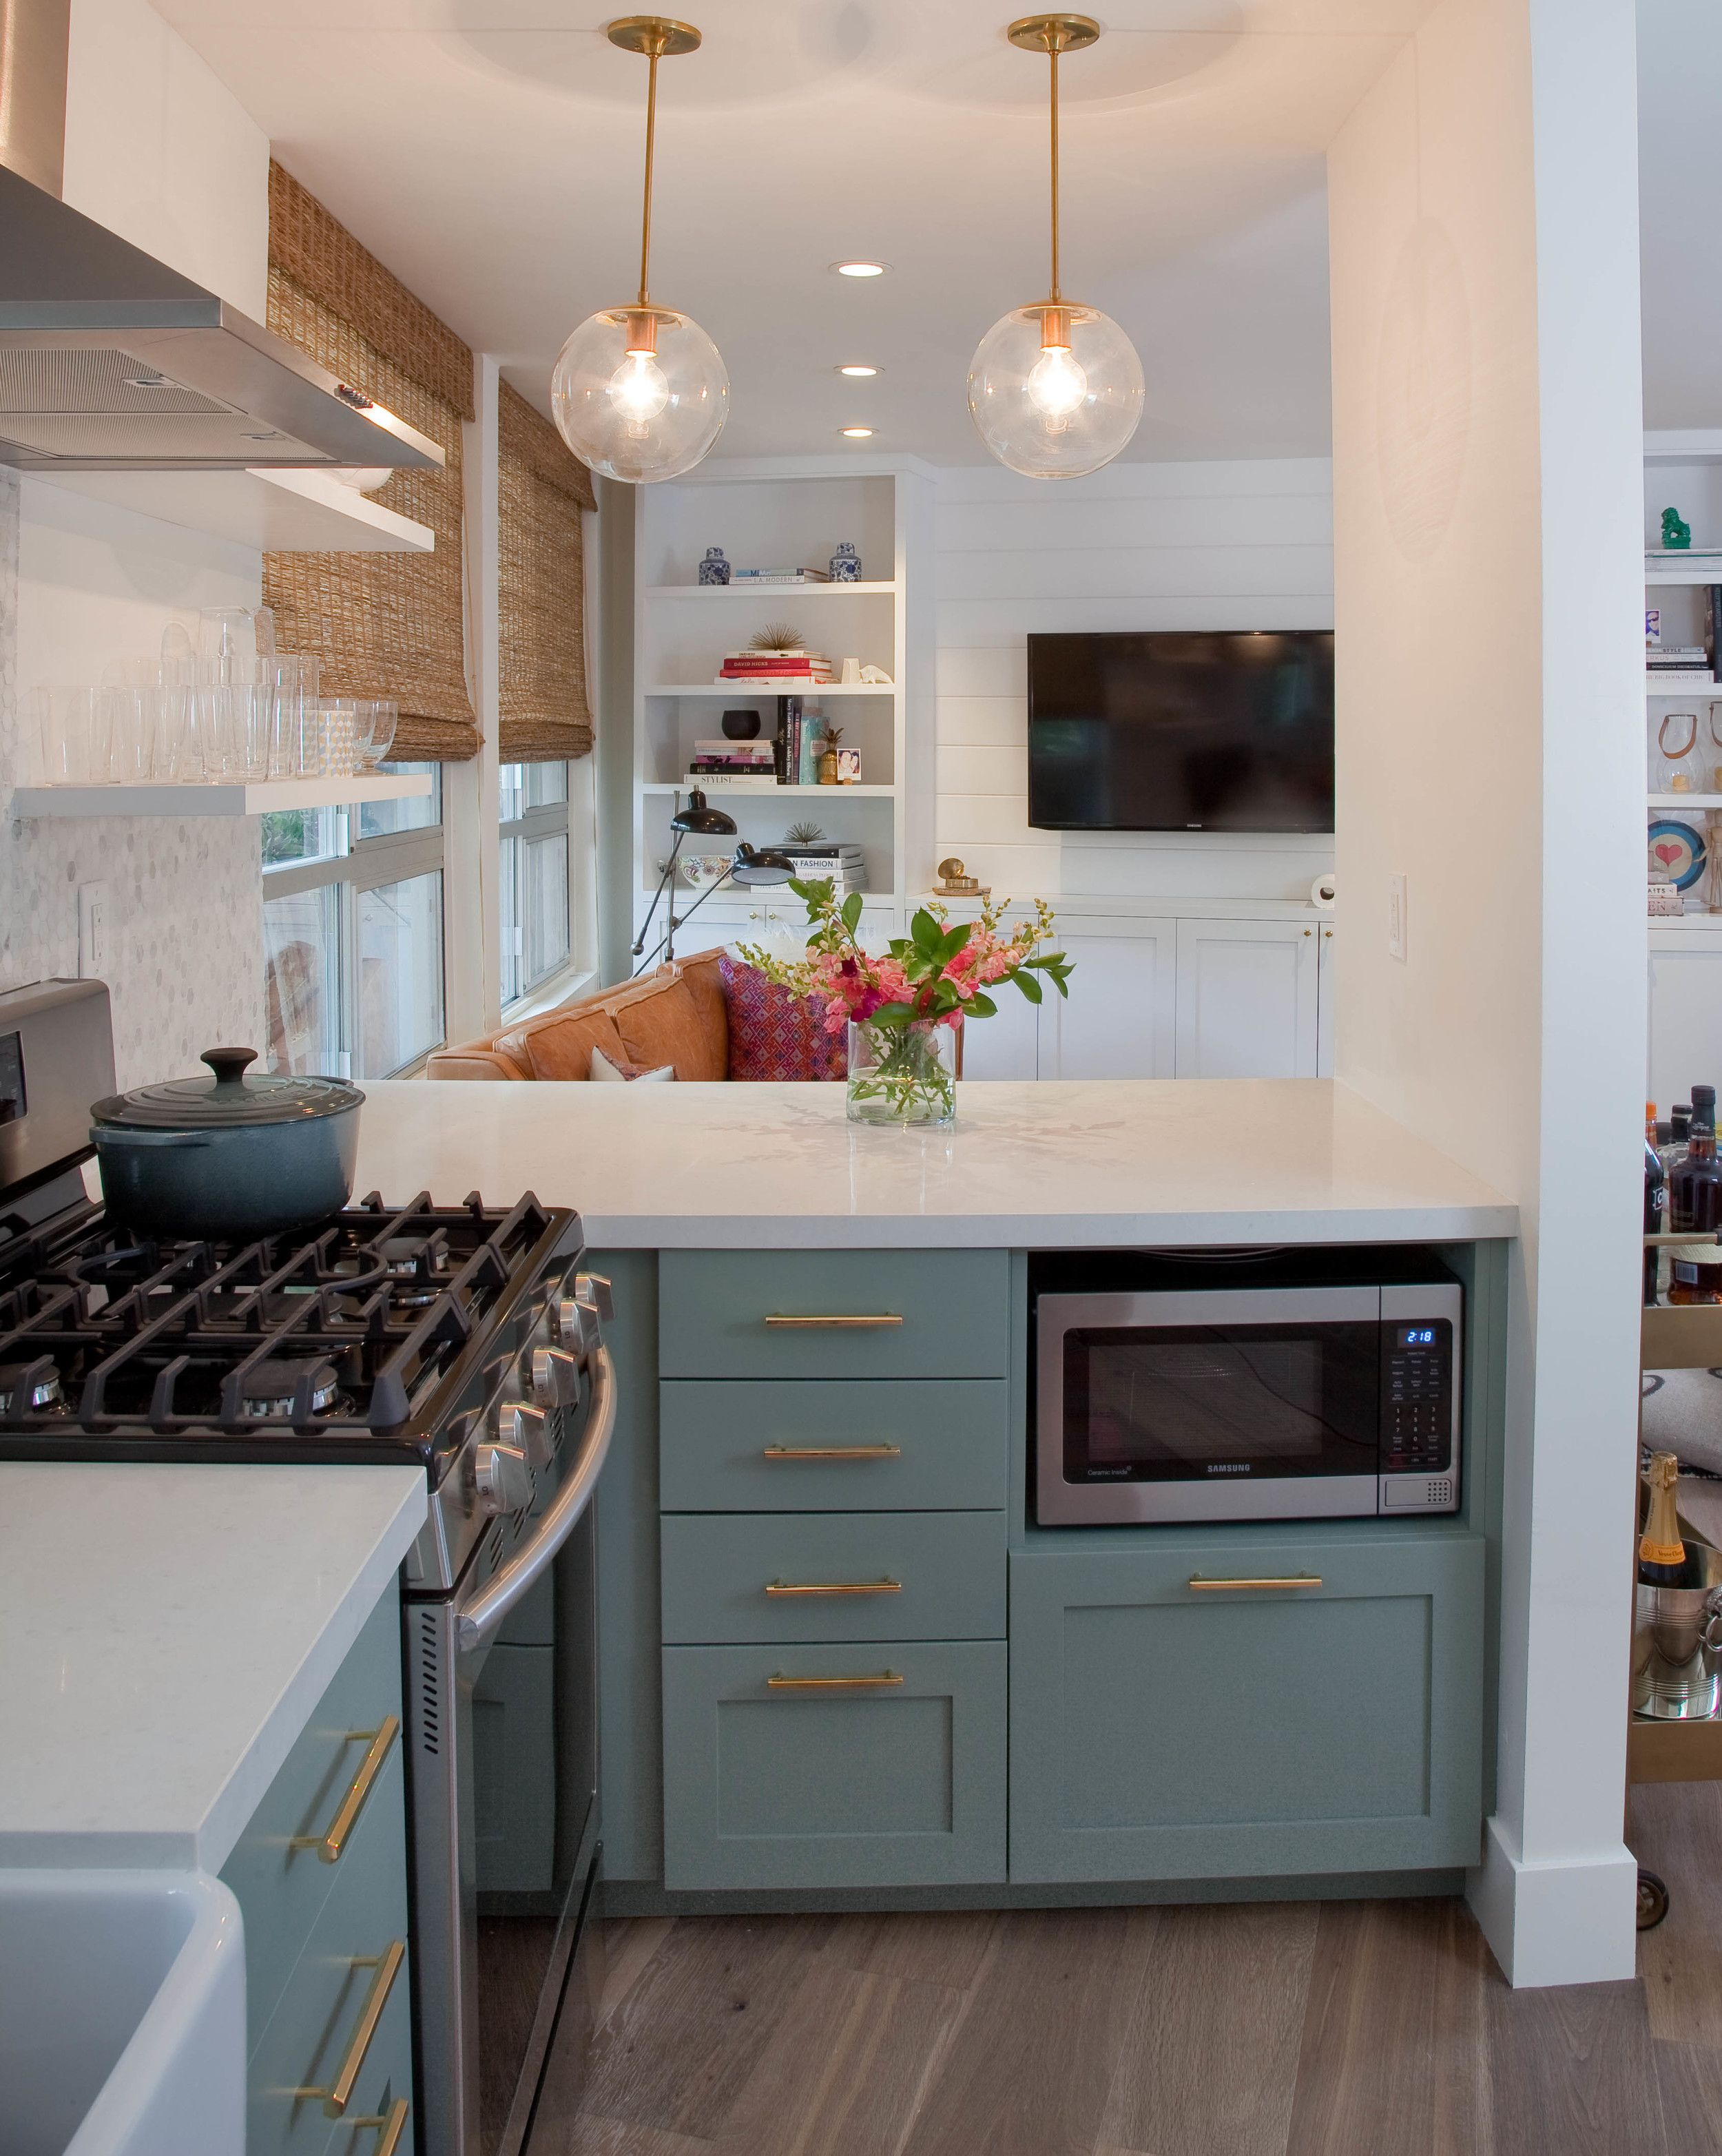 Interior Decorating Kitchen Eclectic Glam Condo Remodel Before Afters Spaces And Gems